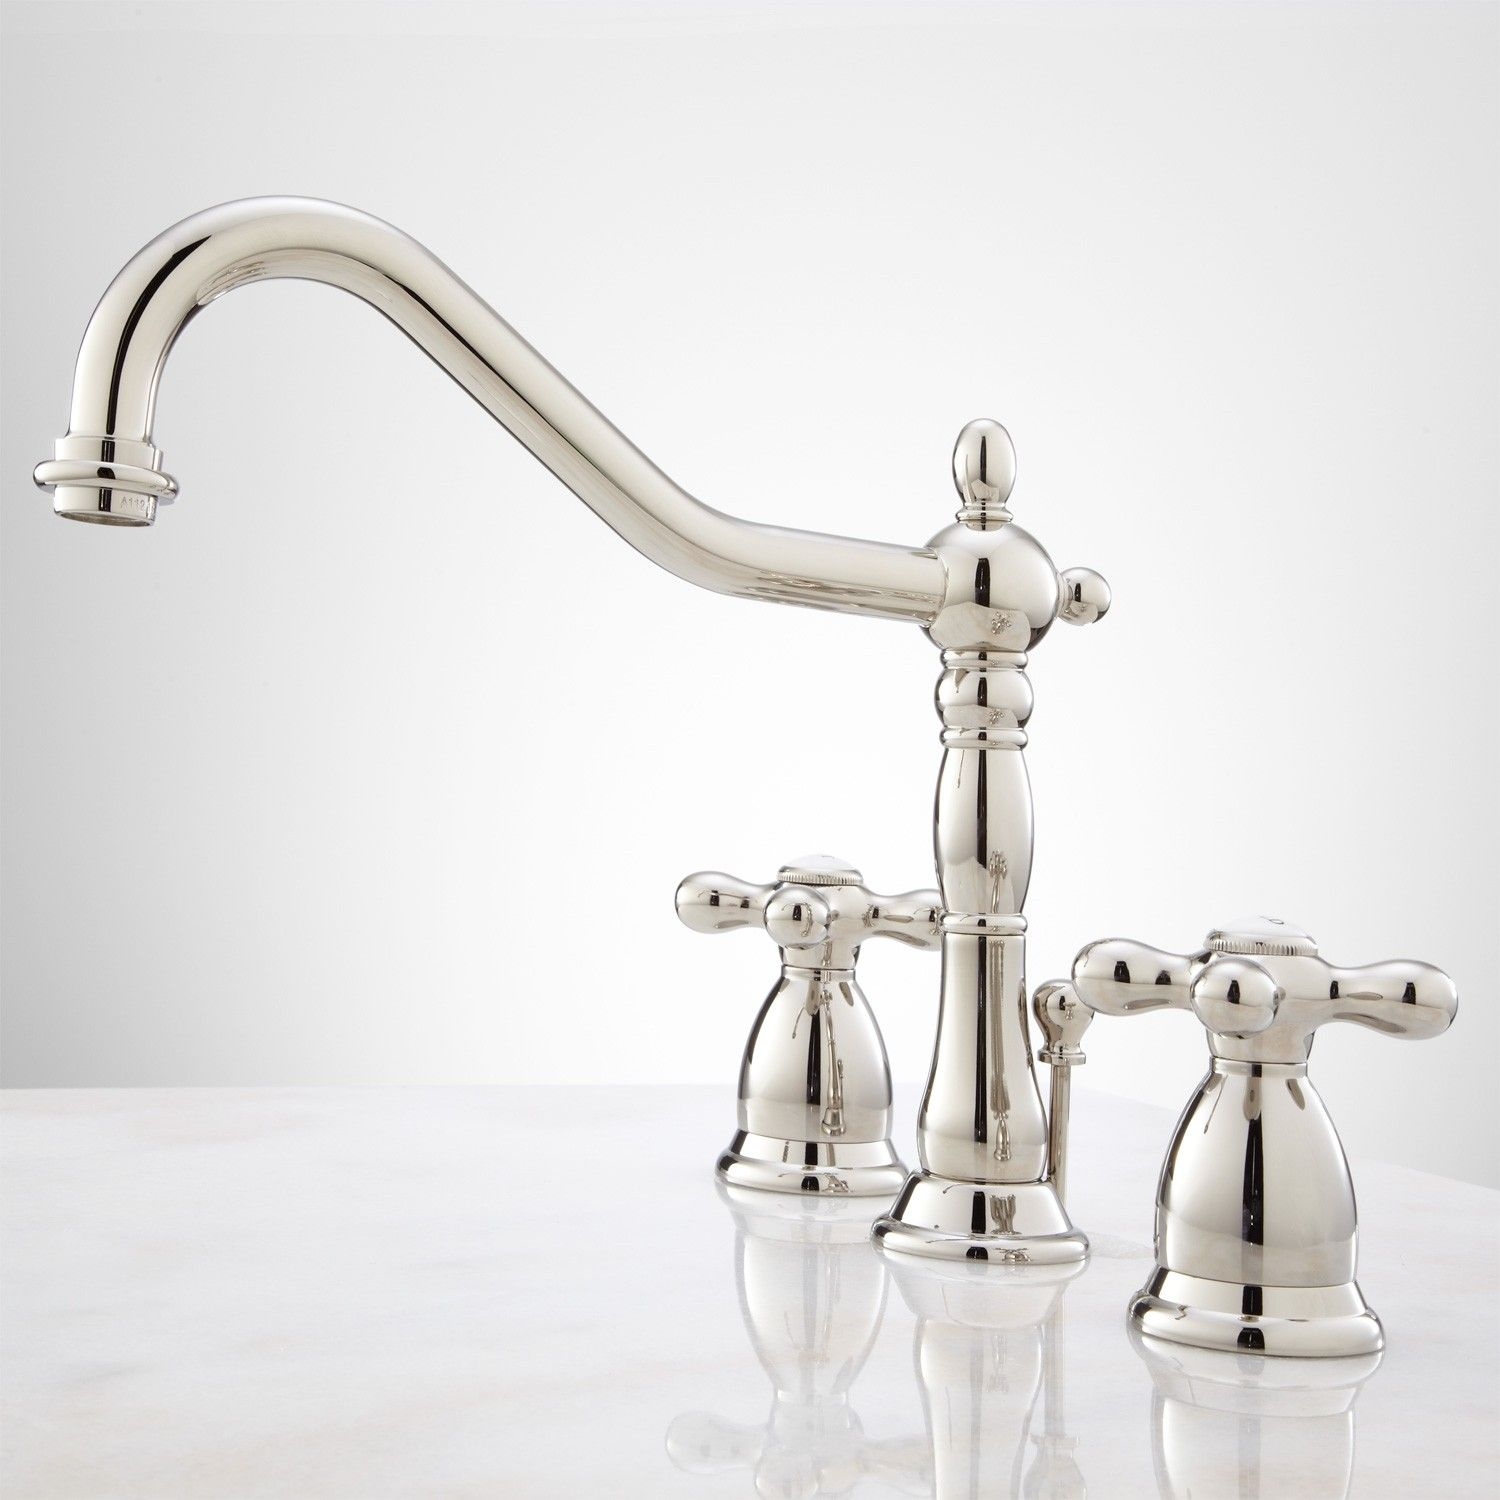 and pampered faucet bathroom victorian offers romantic faucets feel a